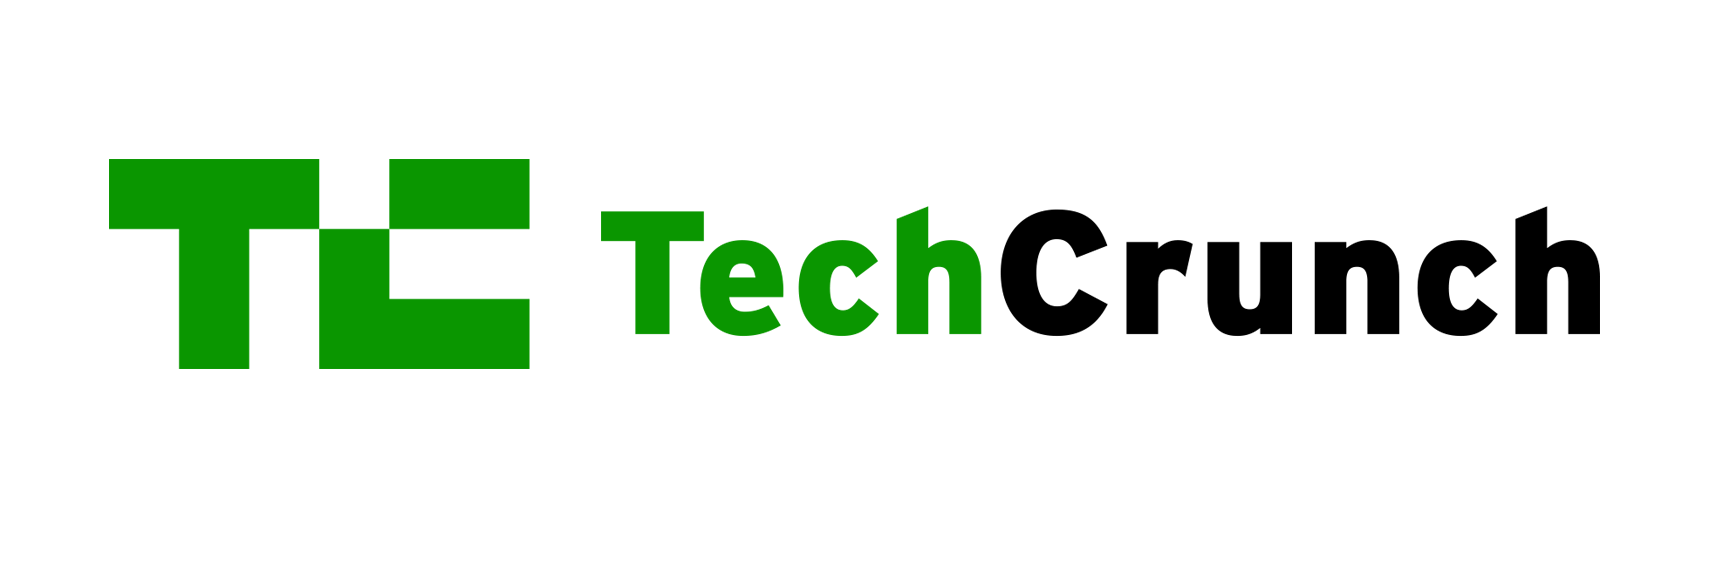 techcrunch-logo